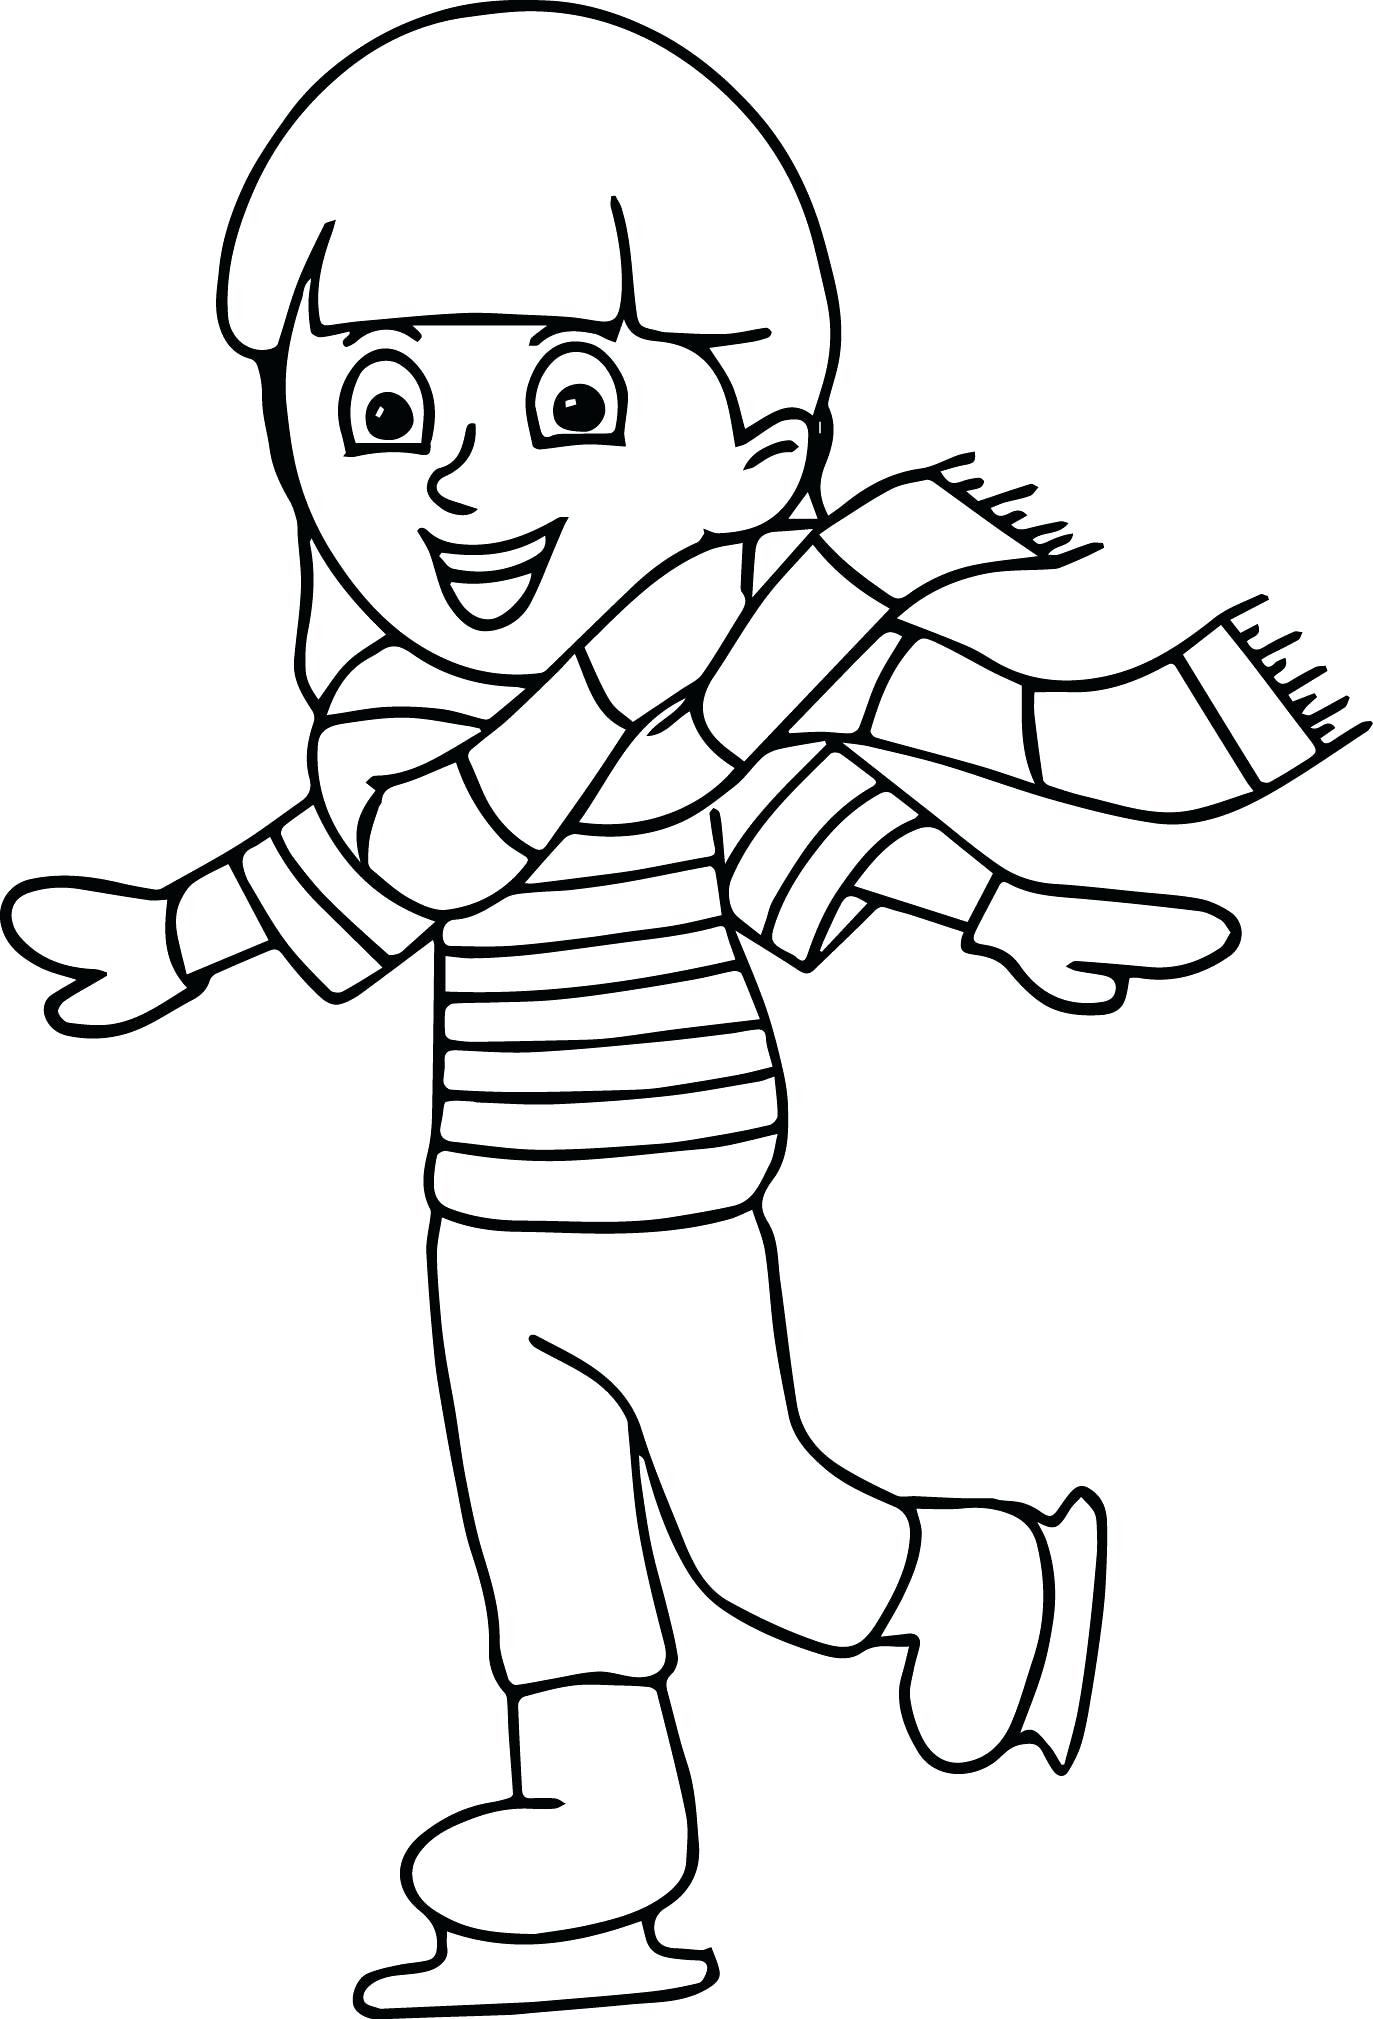 1373x2019 Best Of Coloring Figure Skating Coloring Pages Winter Sport Ice